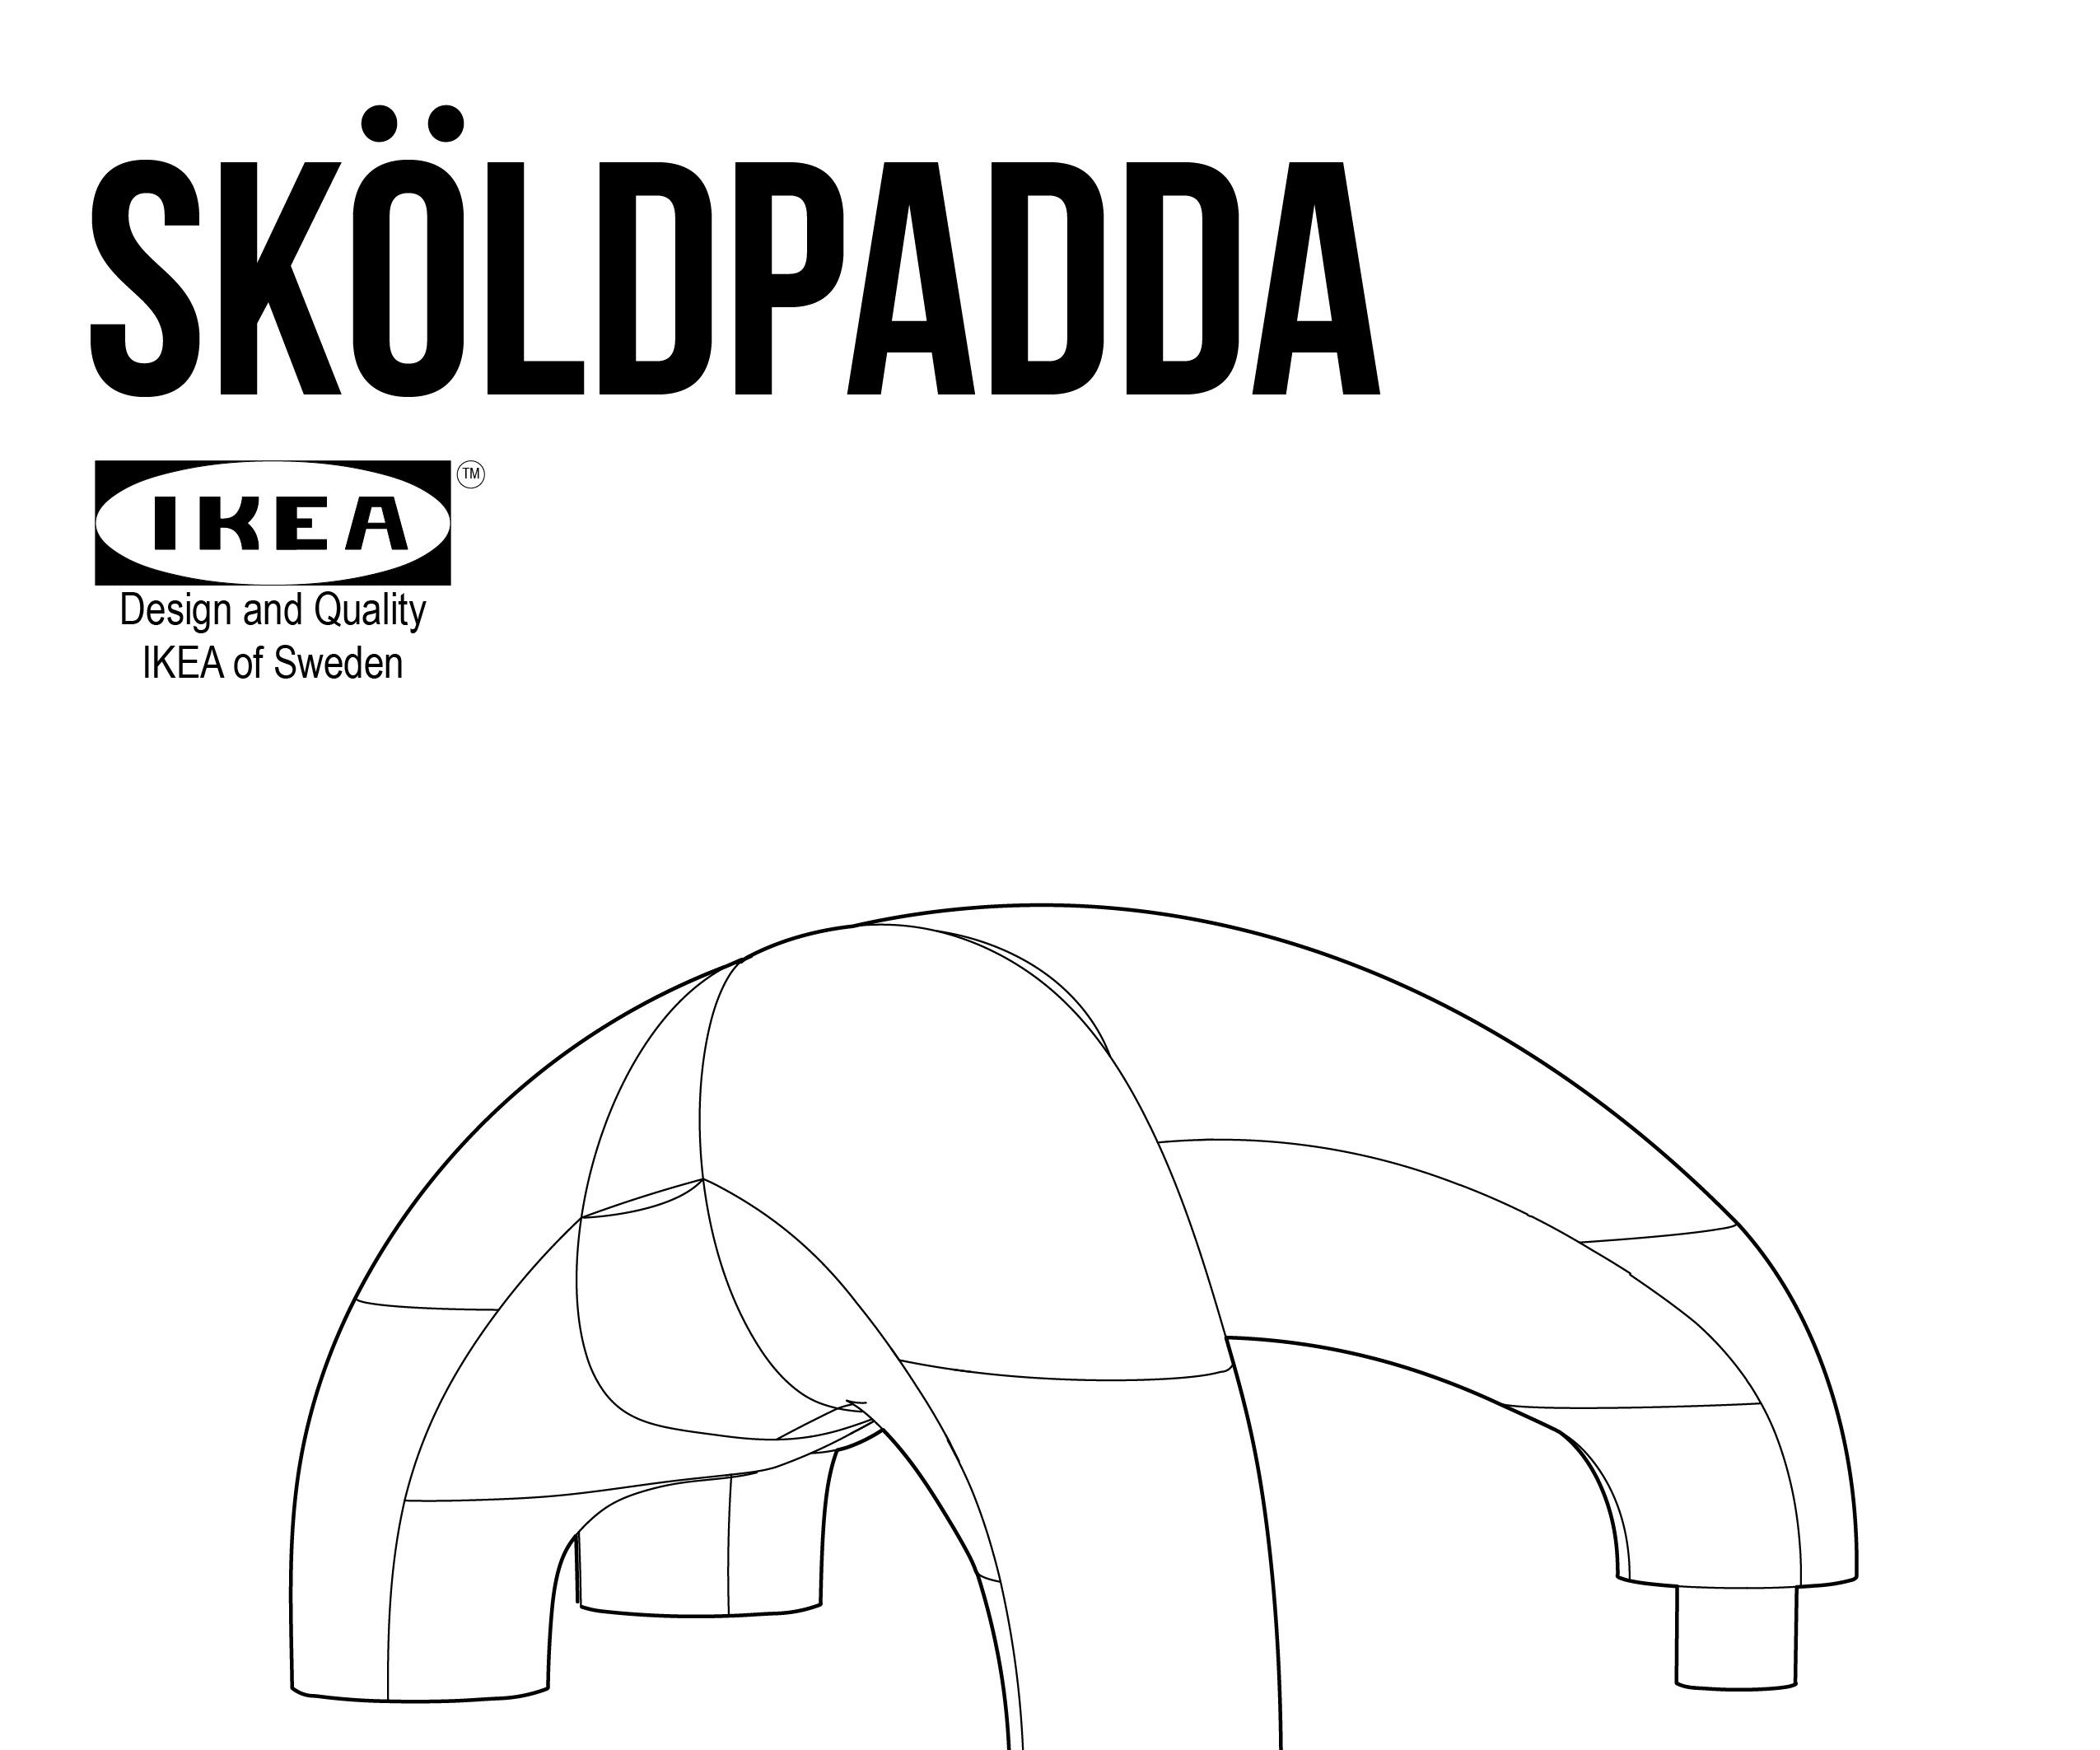 IKEA SKOLDPADDA ASSEMBLY INSTRUCTIONS